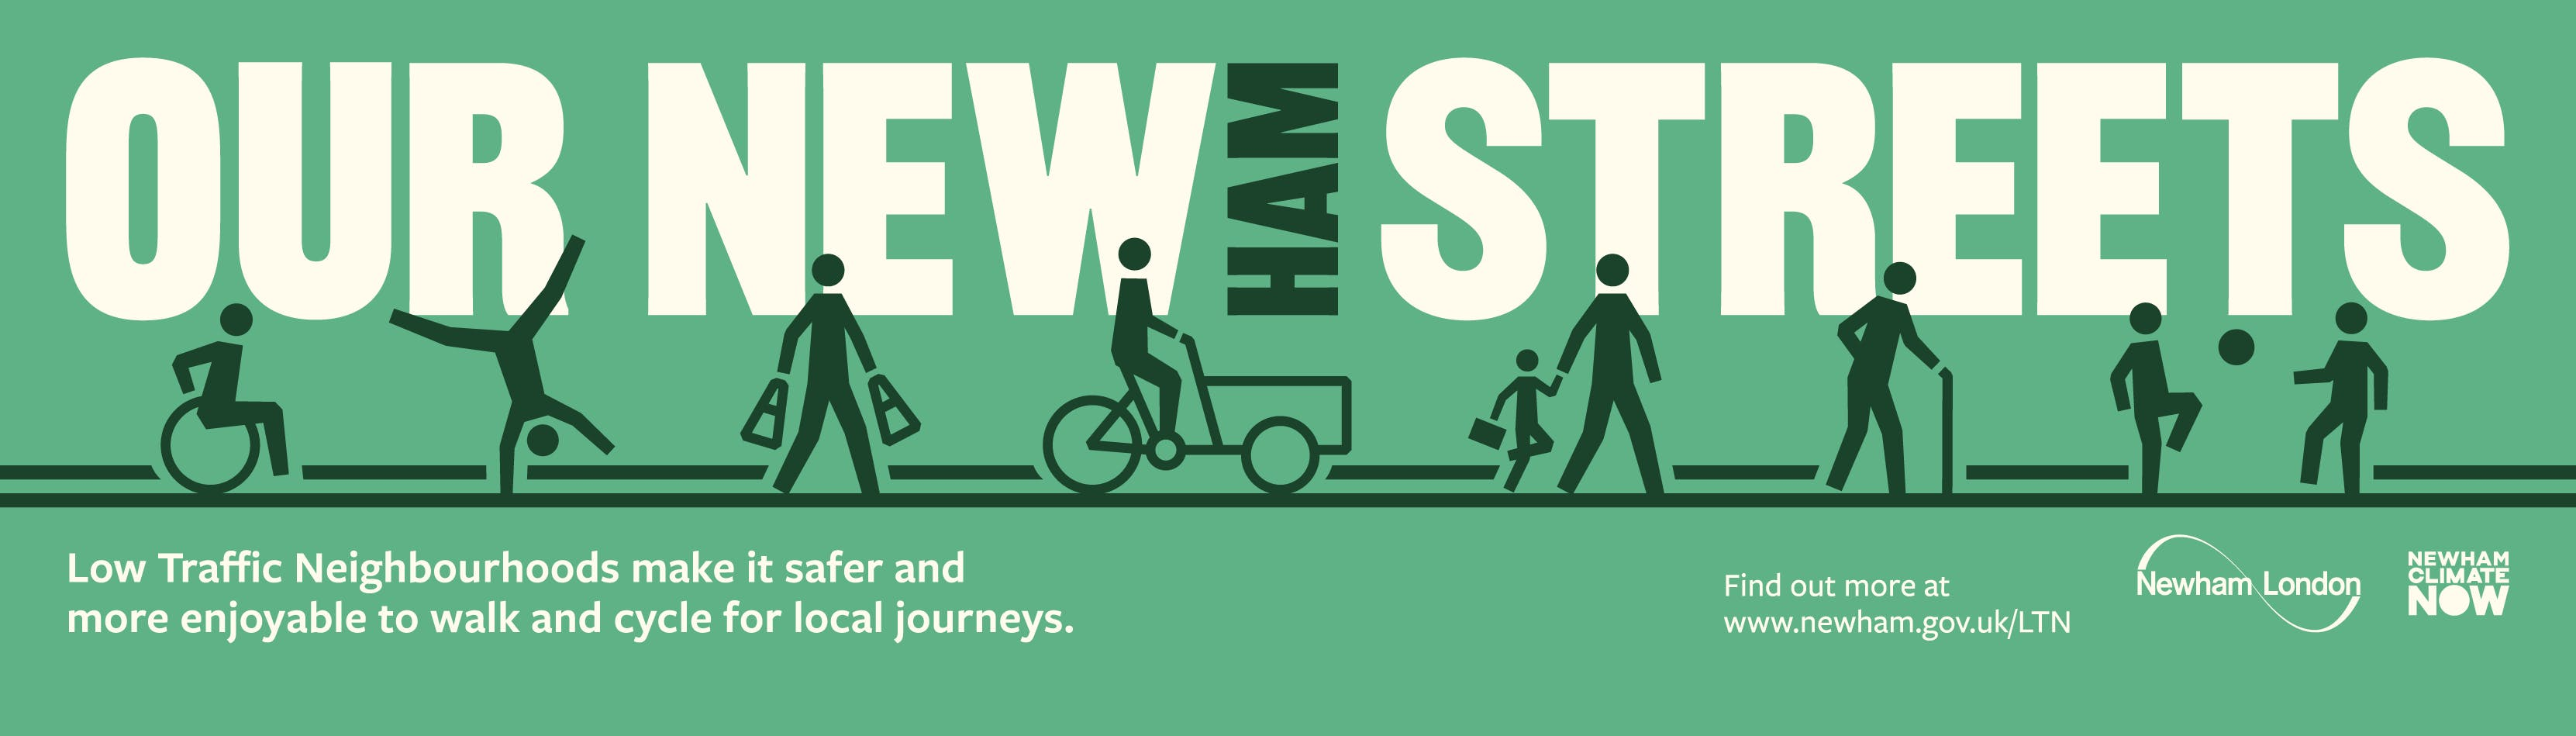 Newham low traffic neighbourhoods web page banner image